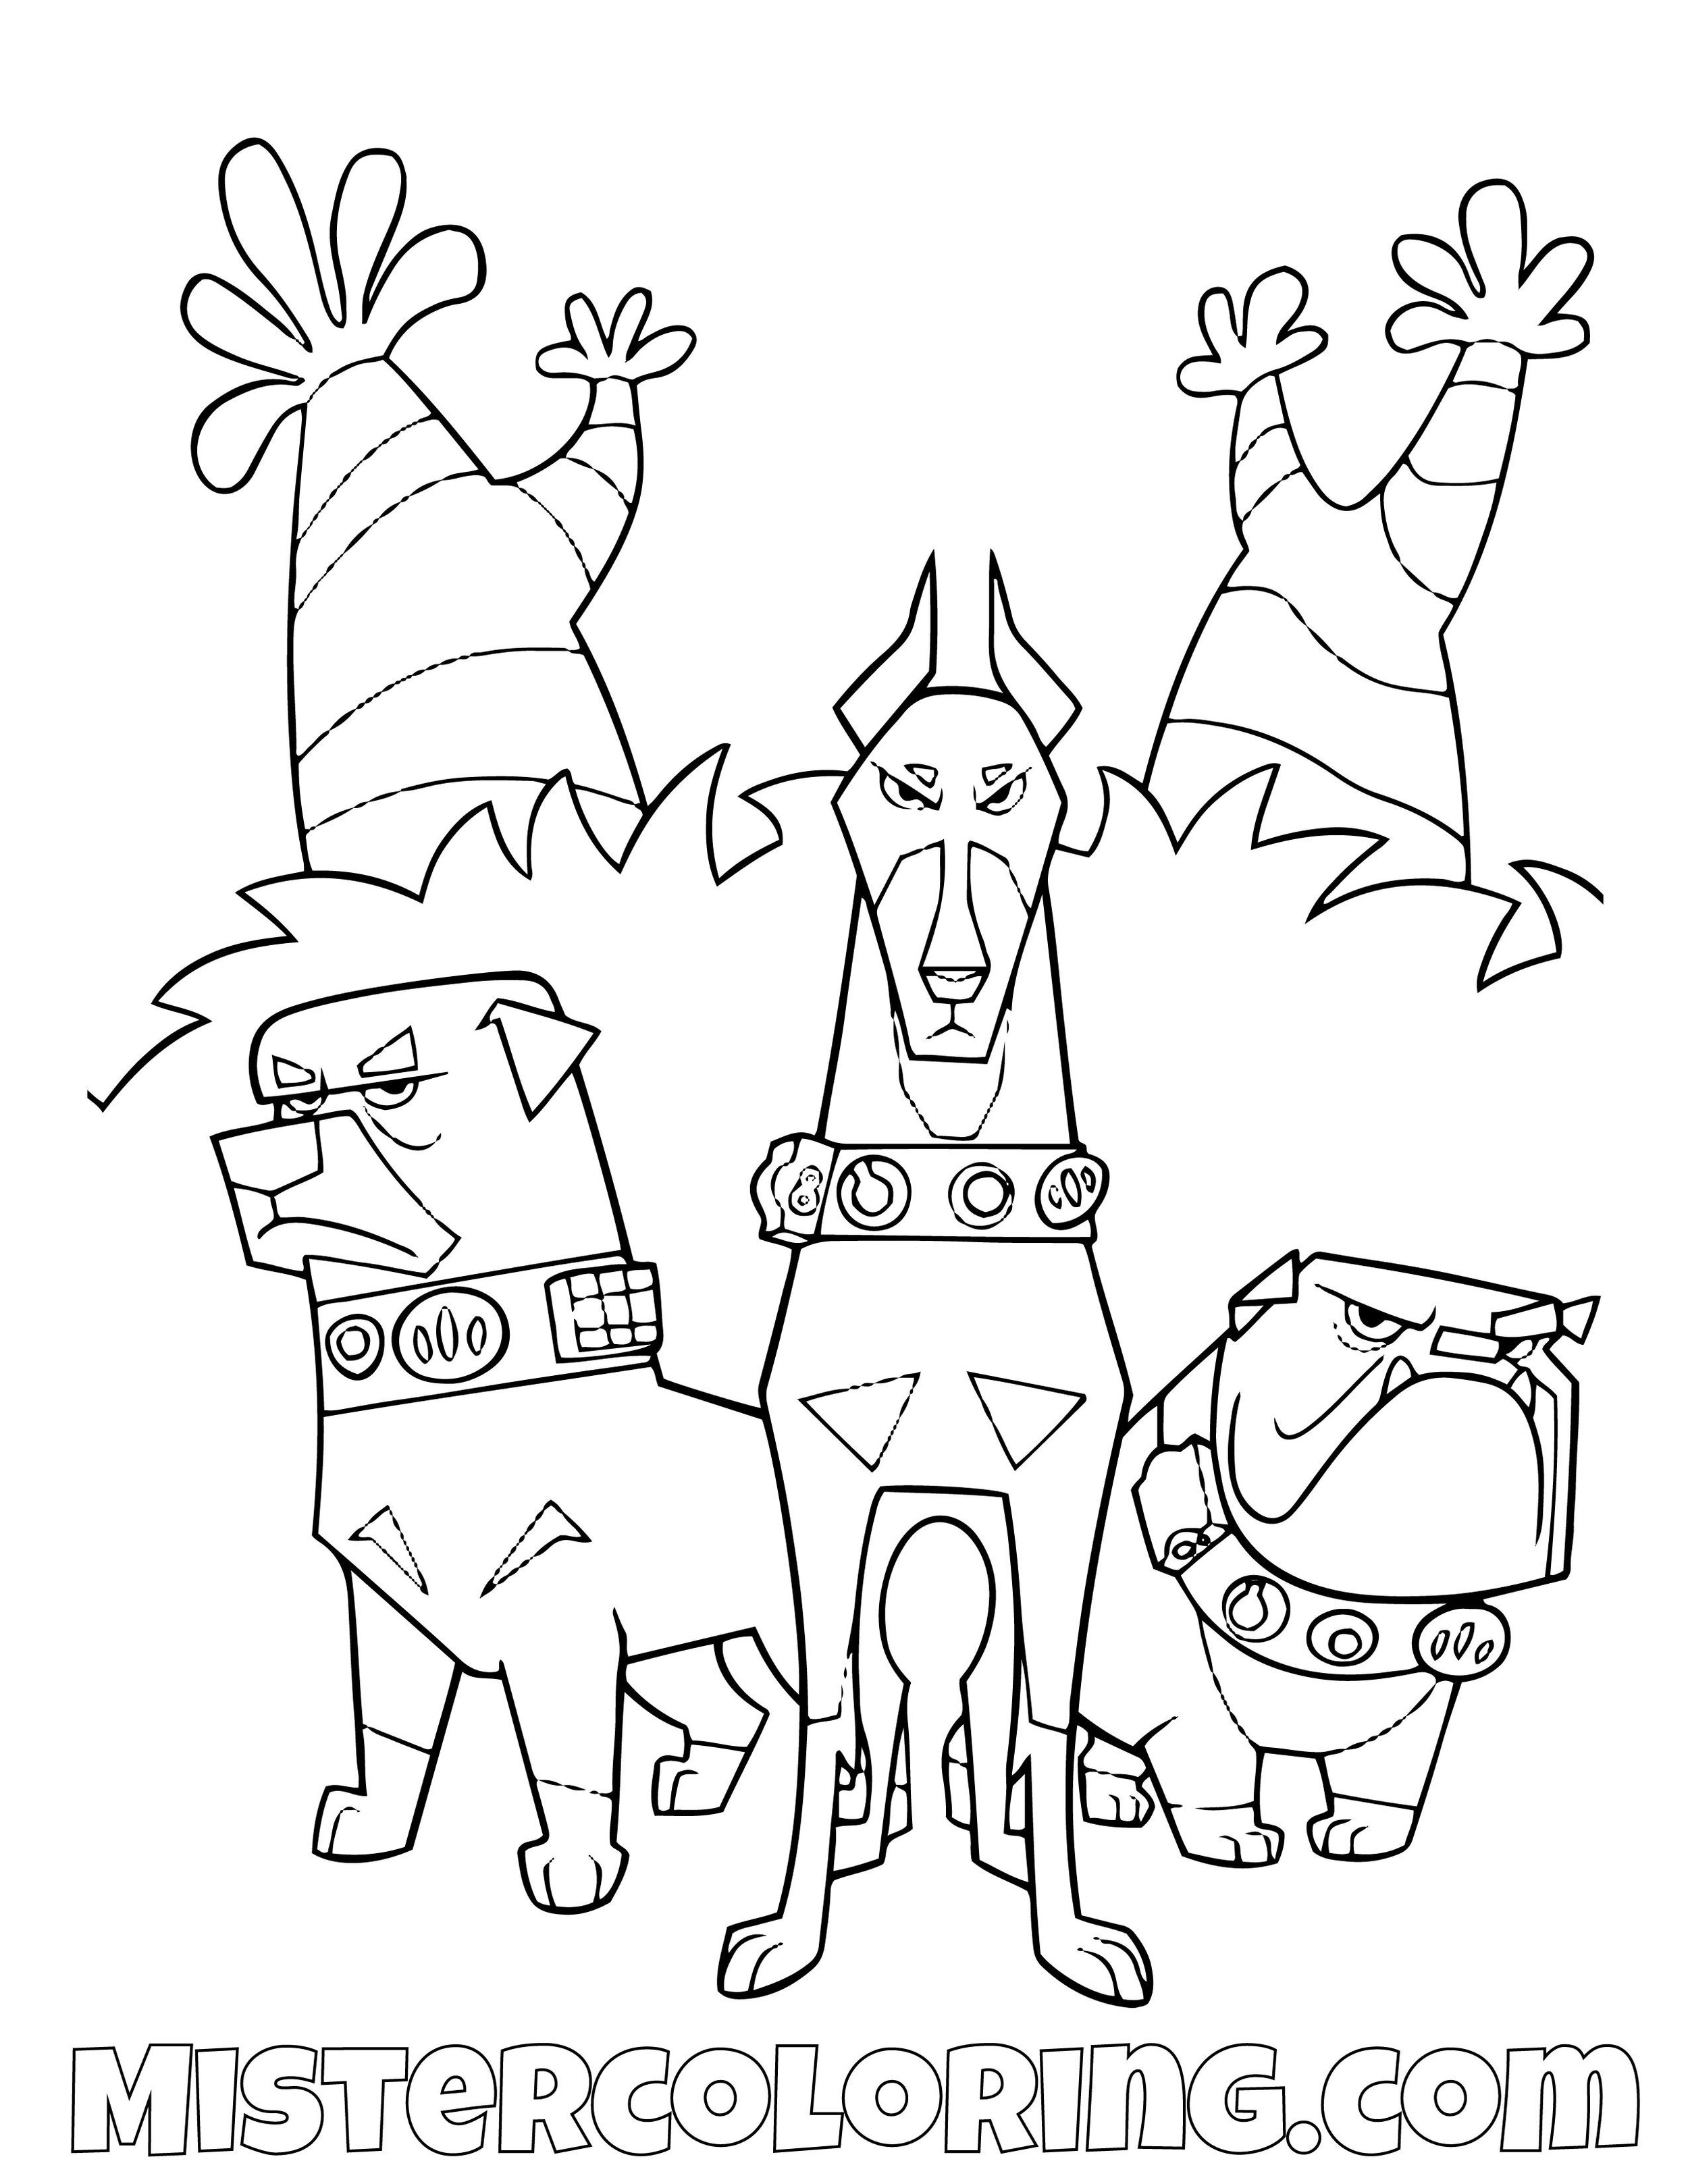 Alpha Beta And Gamma Disney Pixar Up Movie Coloring Pages For Kids